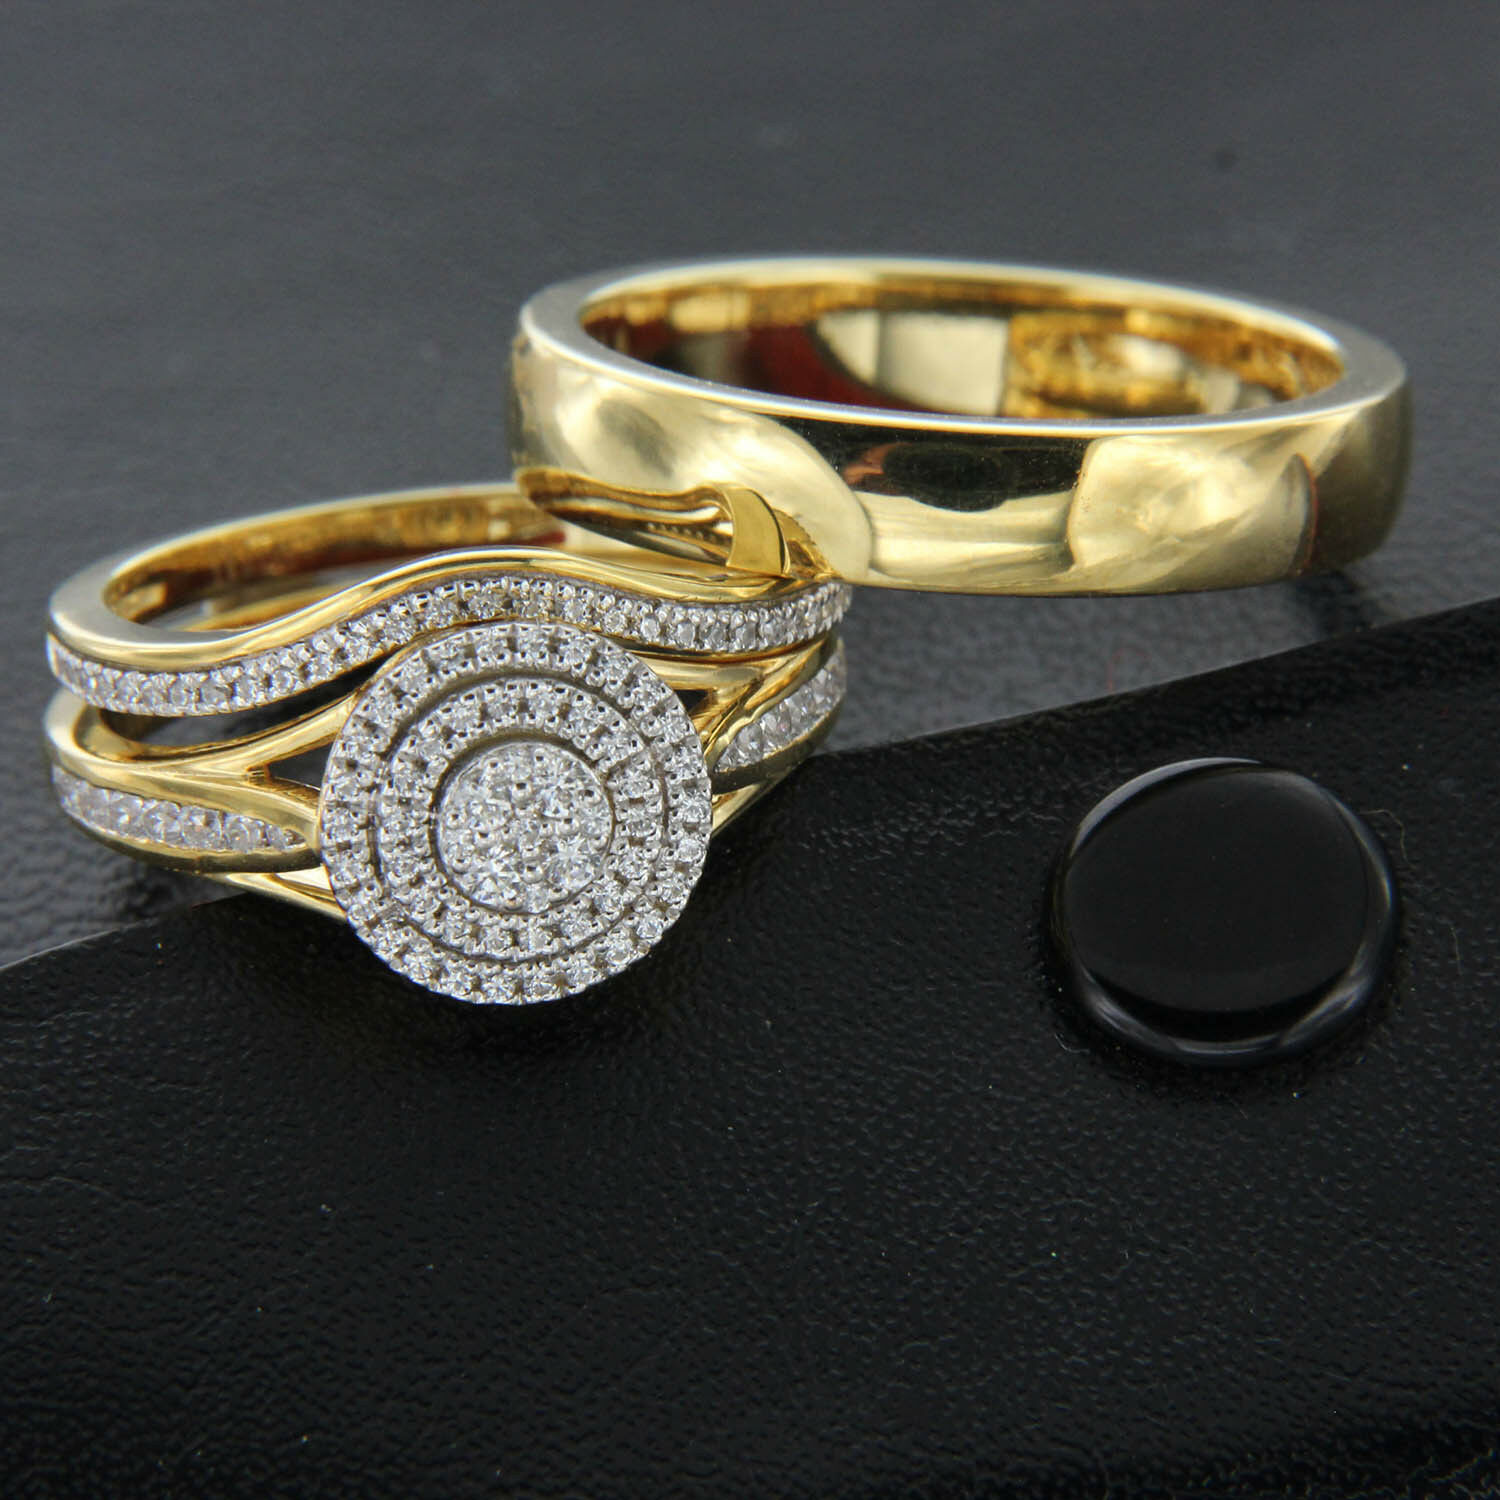 Real 10K Yellow gold His and Hers Set Wedding Rings Round Cut Diamond